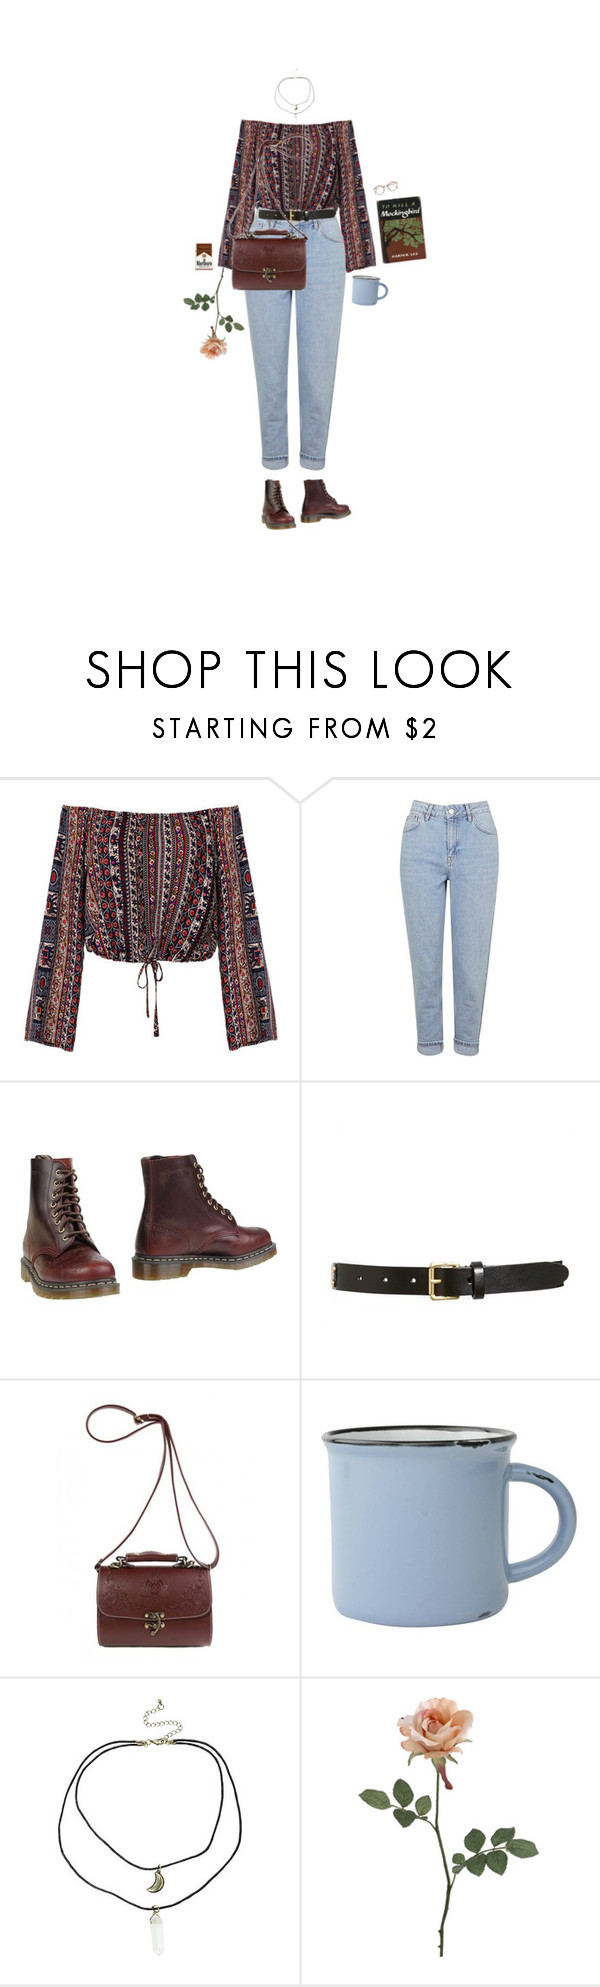 """pidäthän mua kädestä"" by hetasdfghjkl ❤ liked on Polyvore featuring Topshop, Dr. Martens, Tory Burch and canvas"